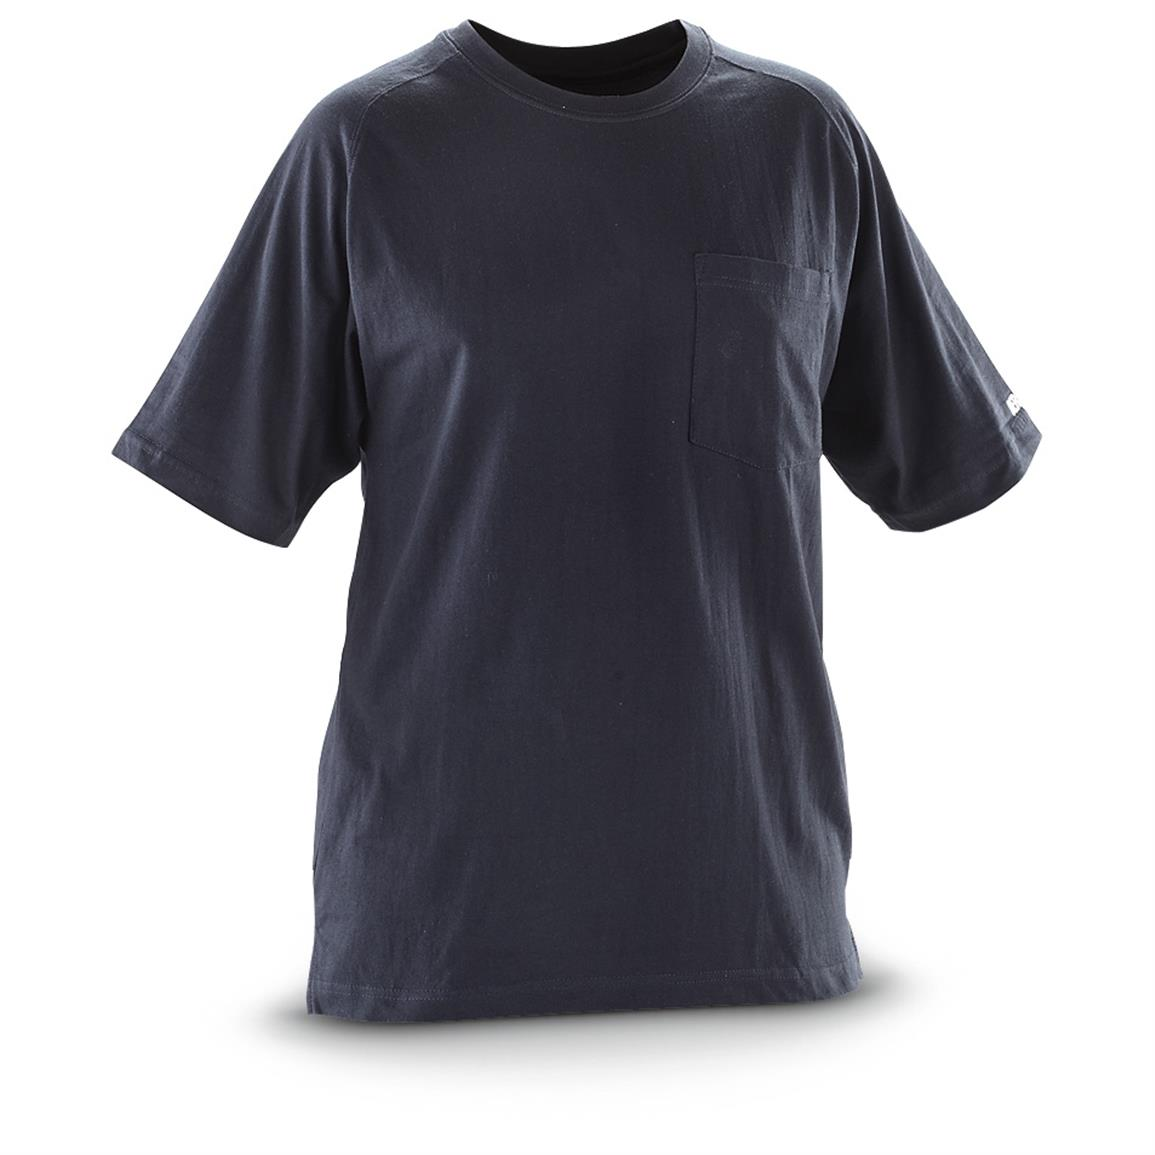 Berne Short-sleeved Performance T-shirt, Navy